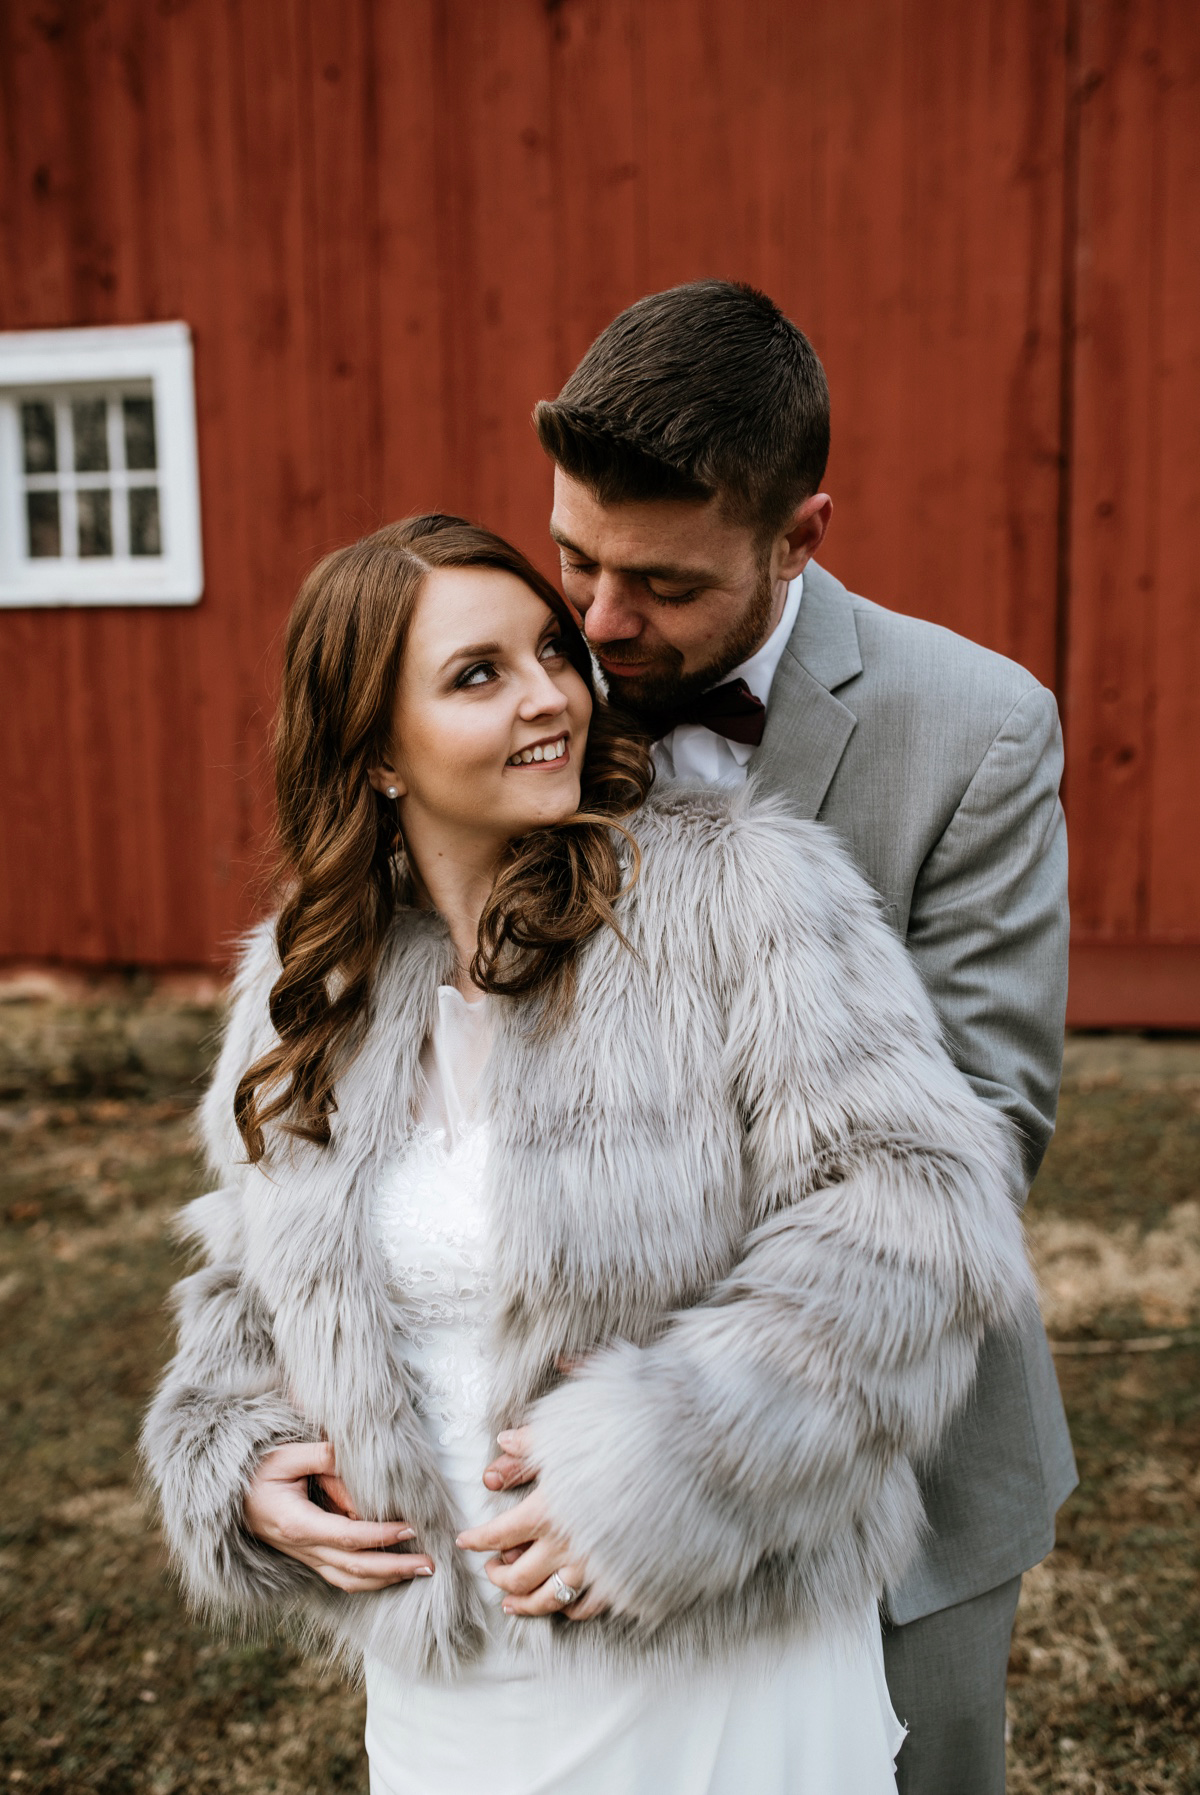 37 Vermont Wedding Photographer The Inn At Glencairn Barn Wedding Inspiration Winter Elopement Intimate Wedding